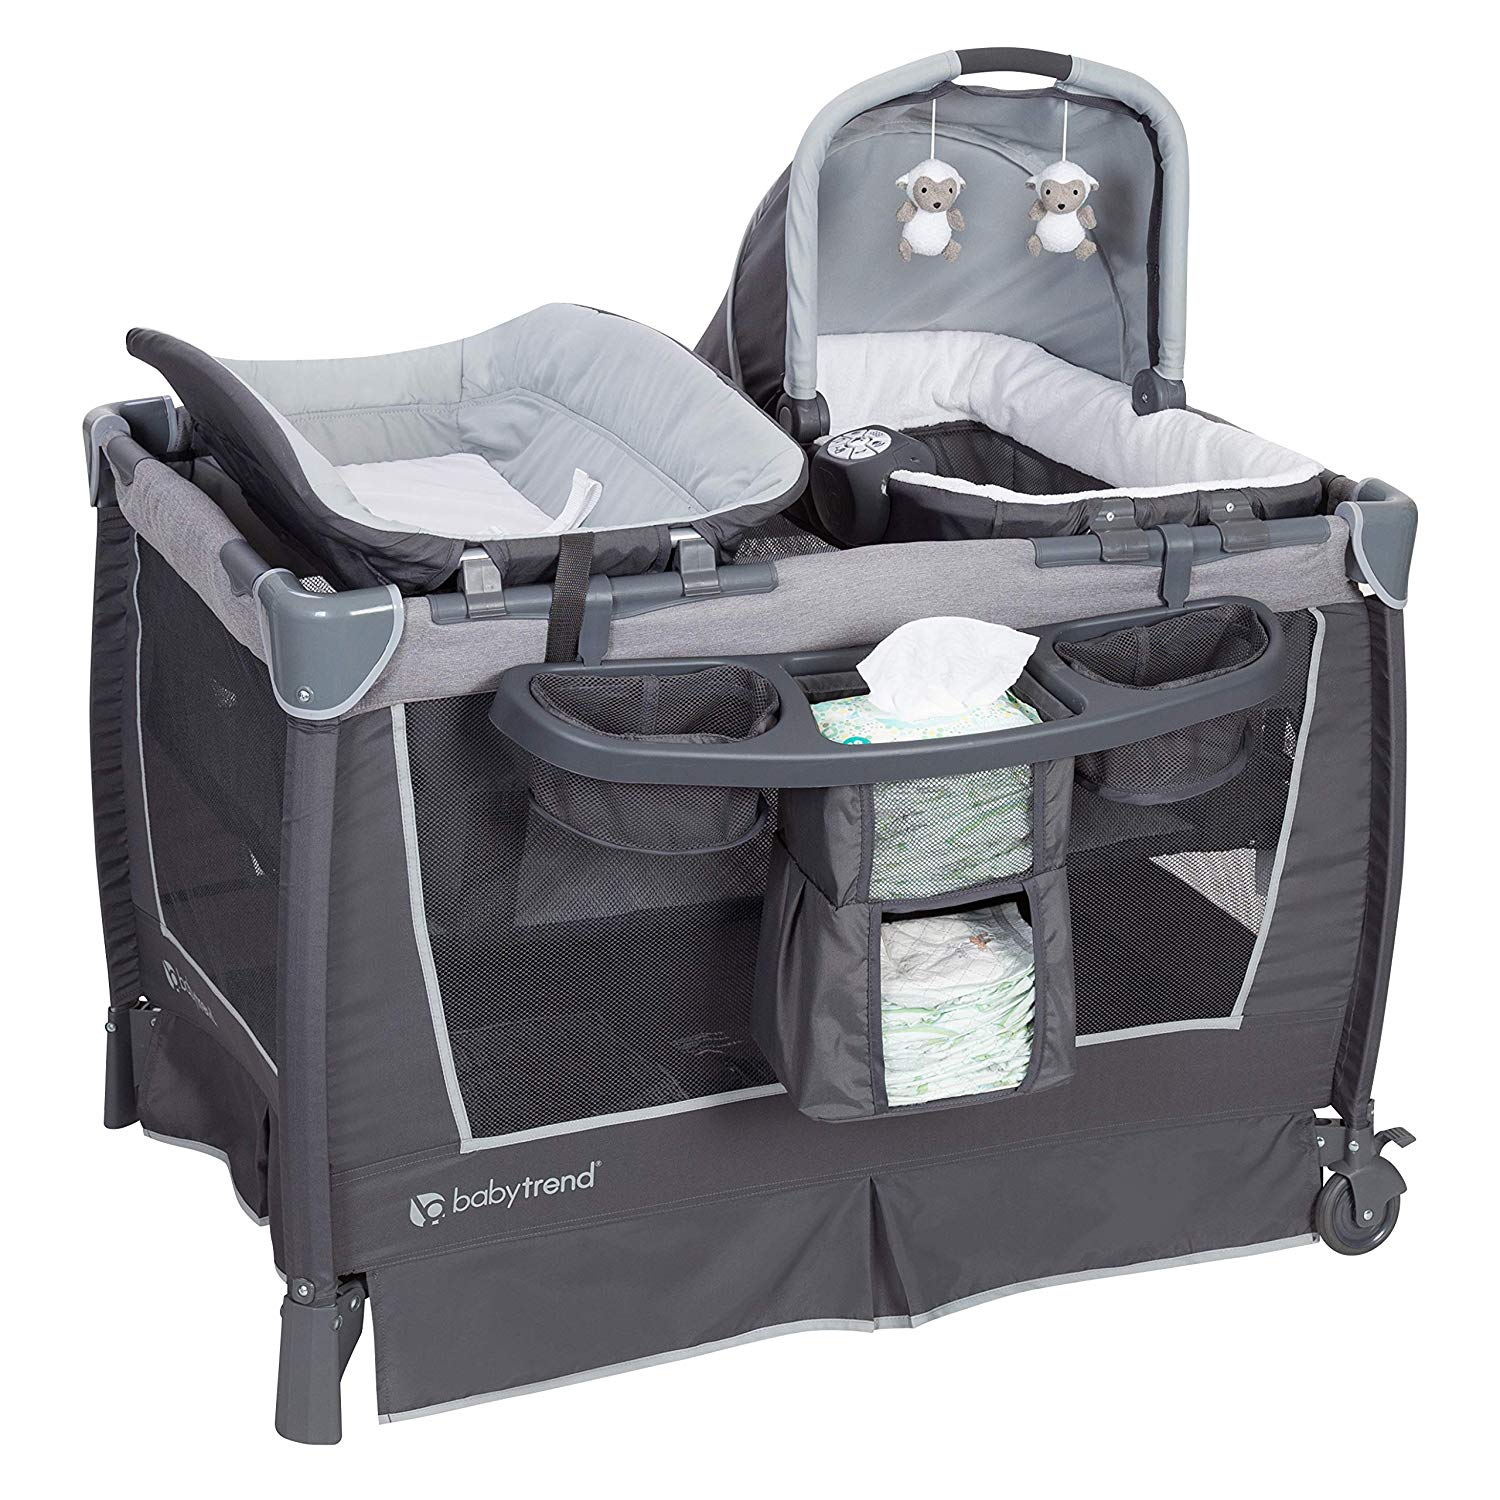 Baby Trend Baby Retreating Center For Nursery